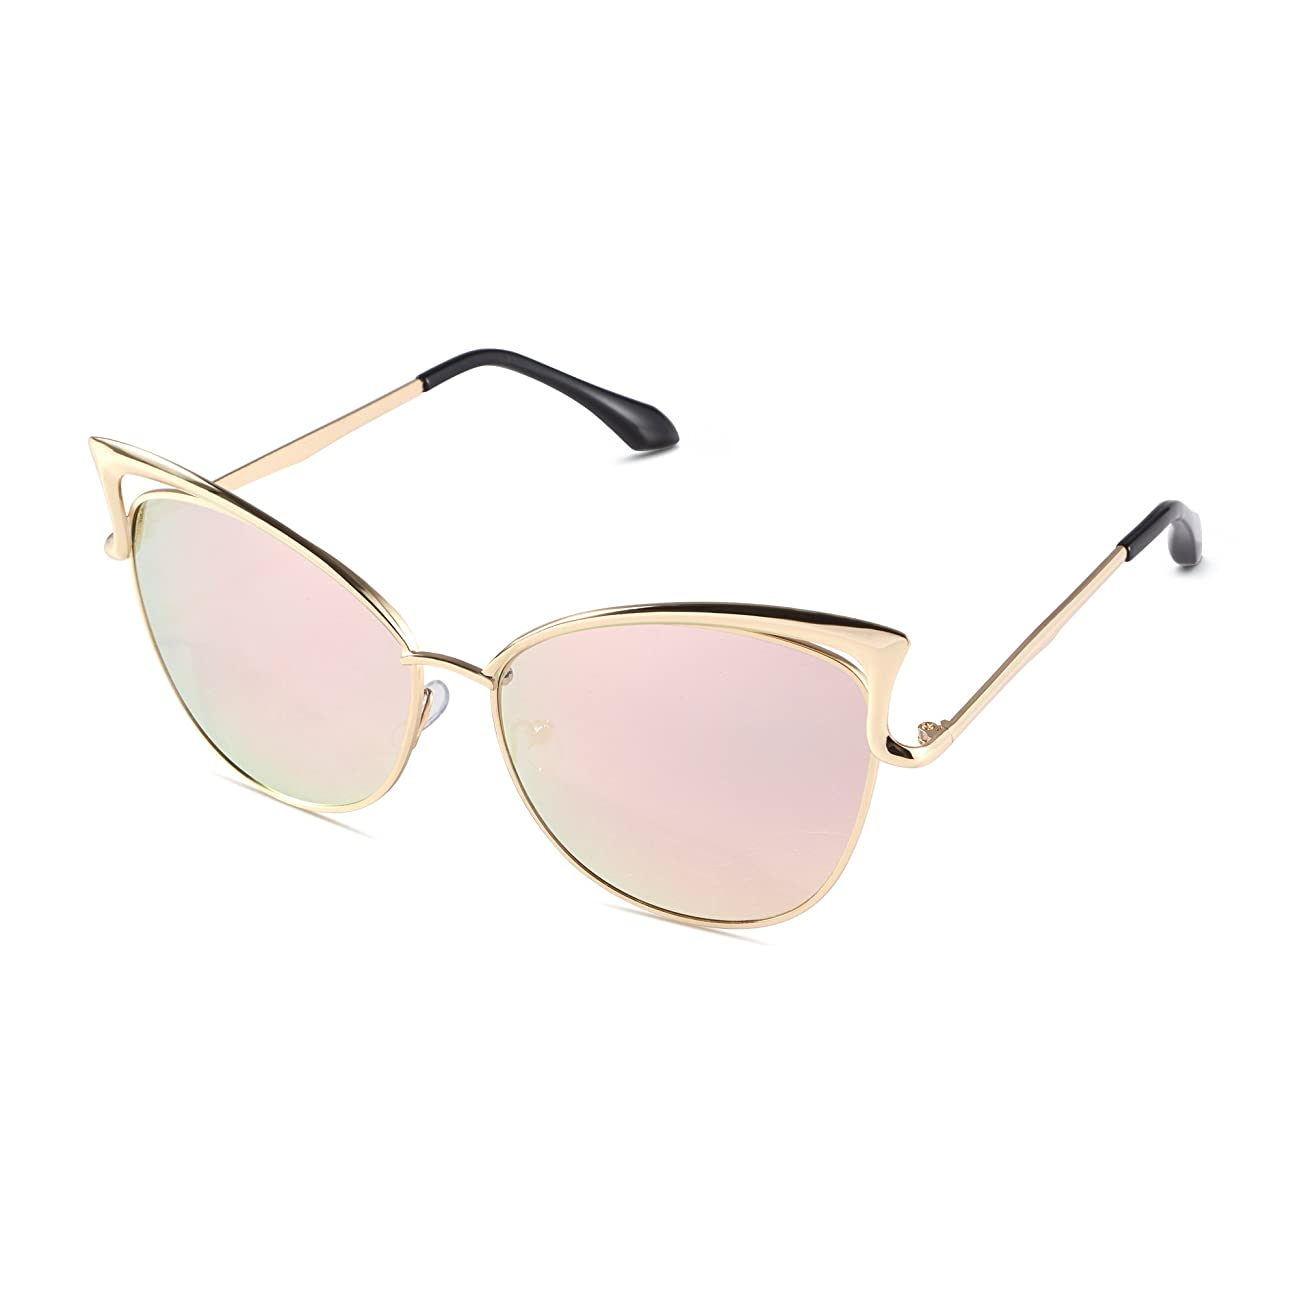 Sunny&Love Women Oversized Cat Eye Sunglasses Mirror Eyewear With Case 0